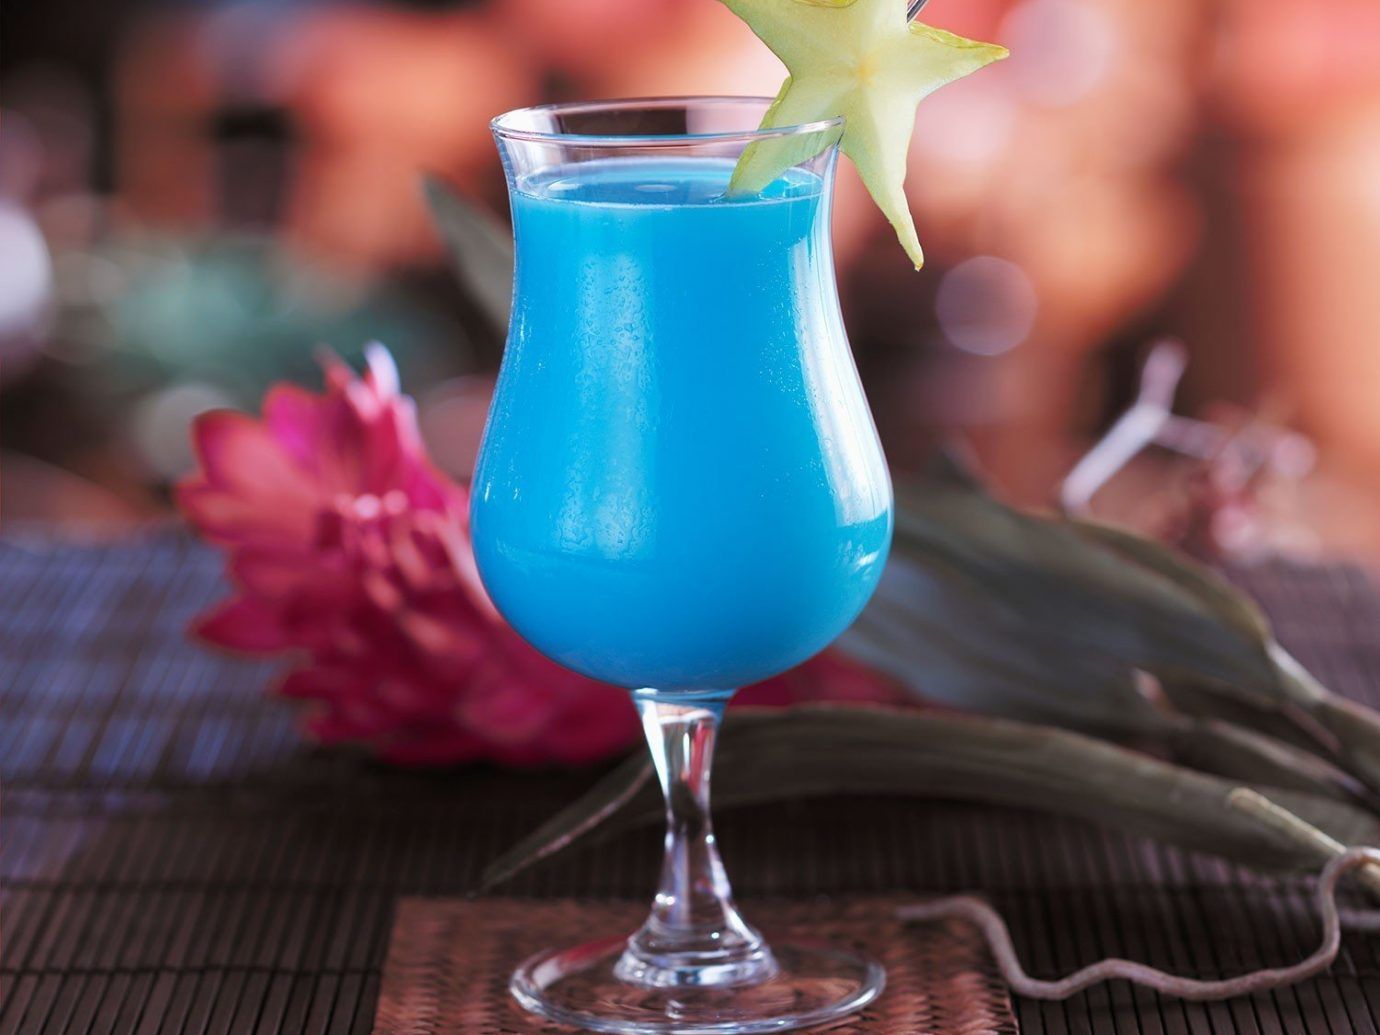 Offbeat table sitting indoor Drink alcoholic beverage cocktail food blue glass